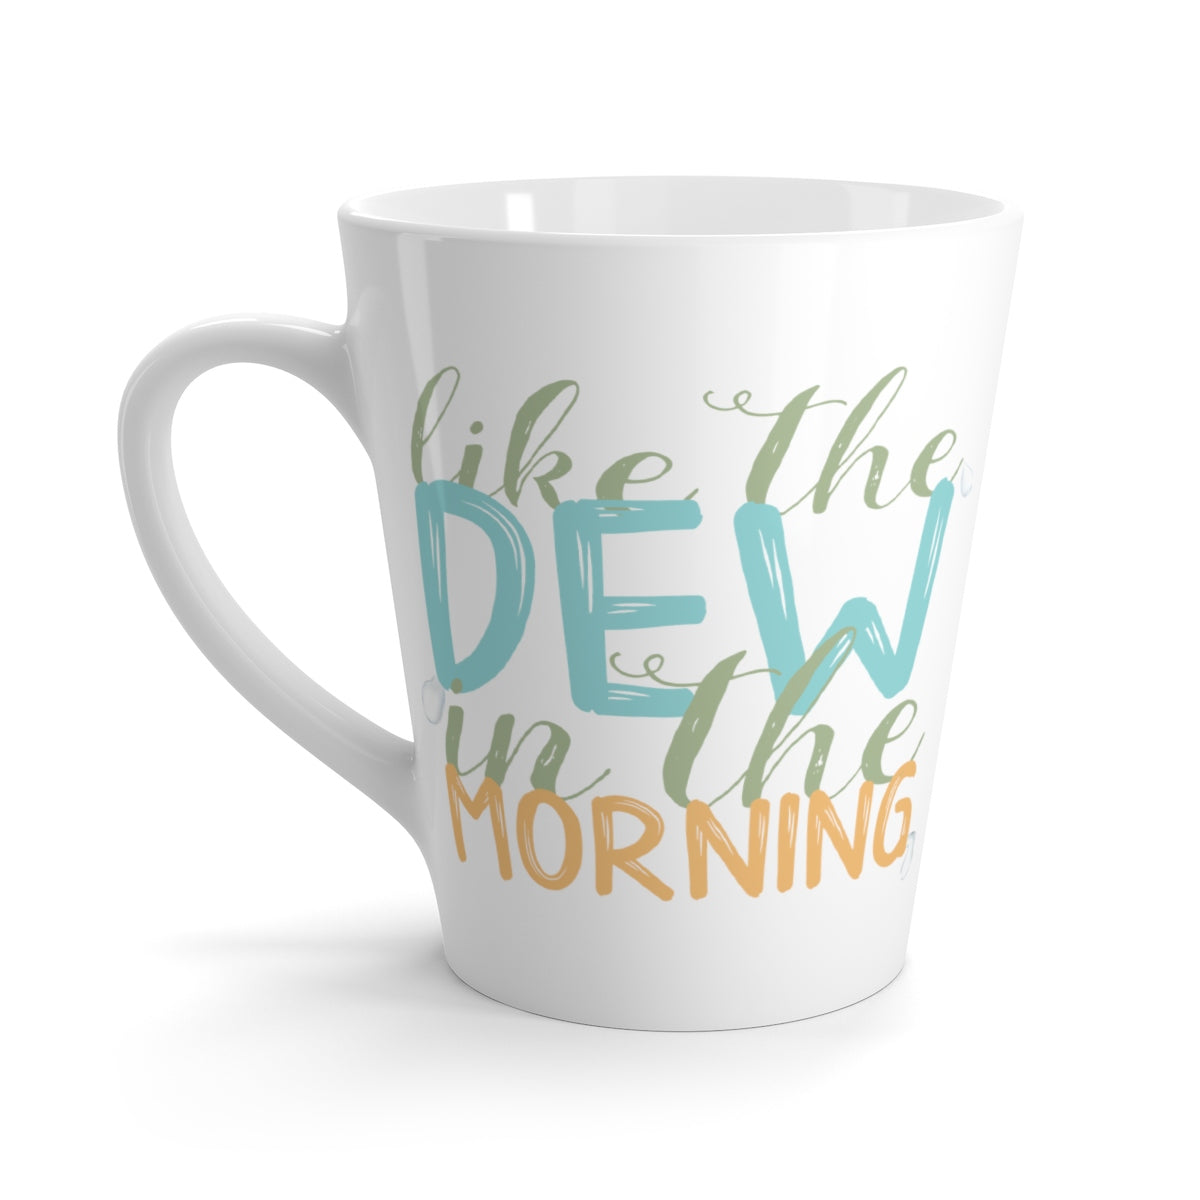 'Like the Dew' Mug